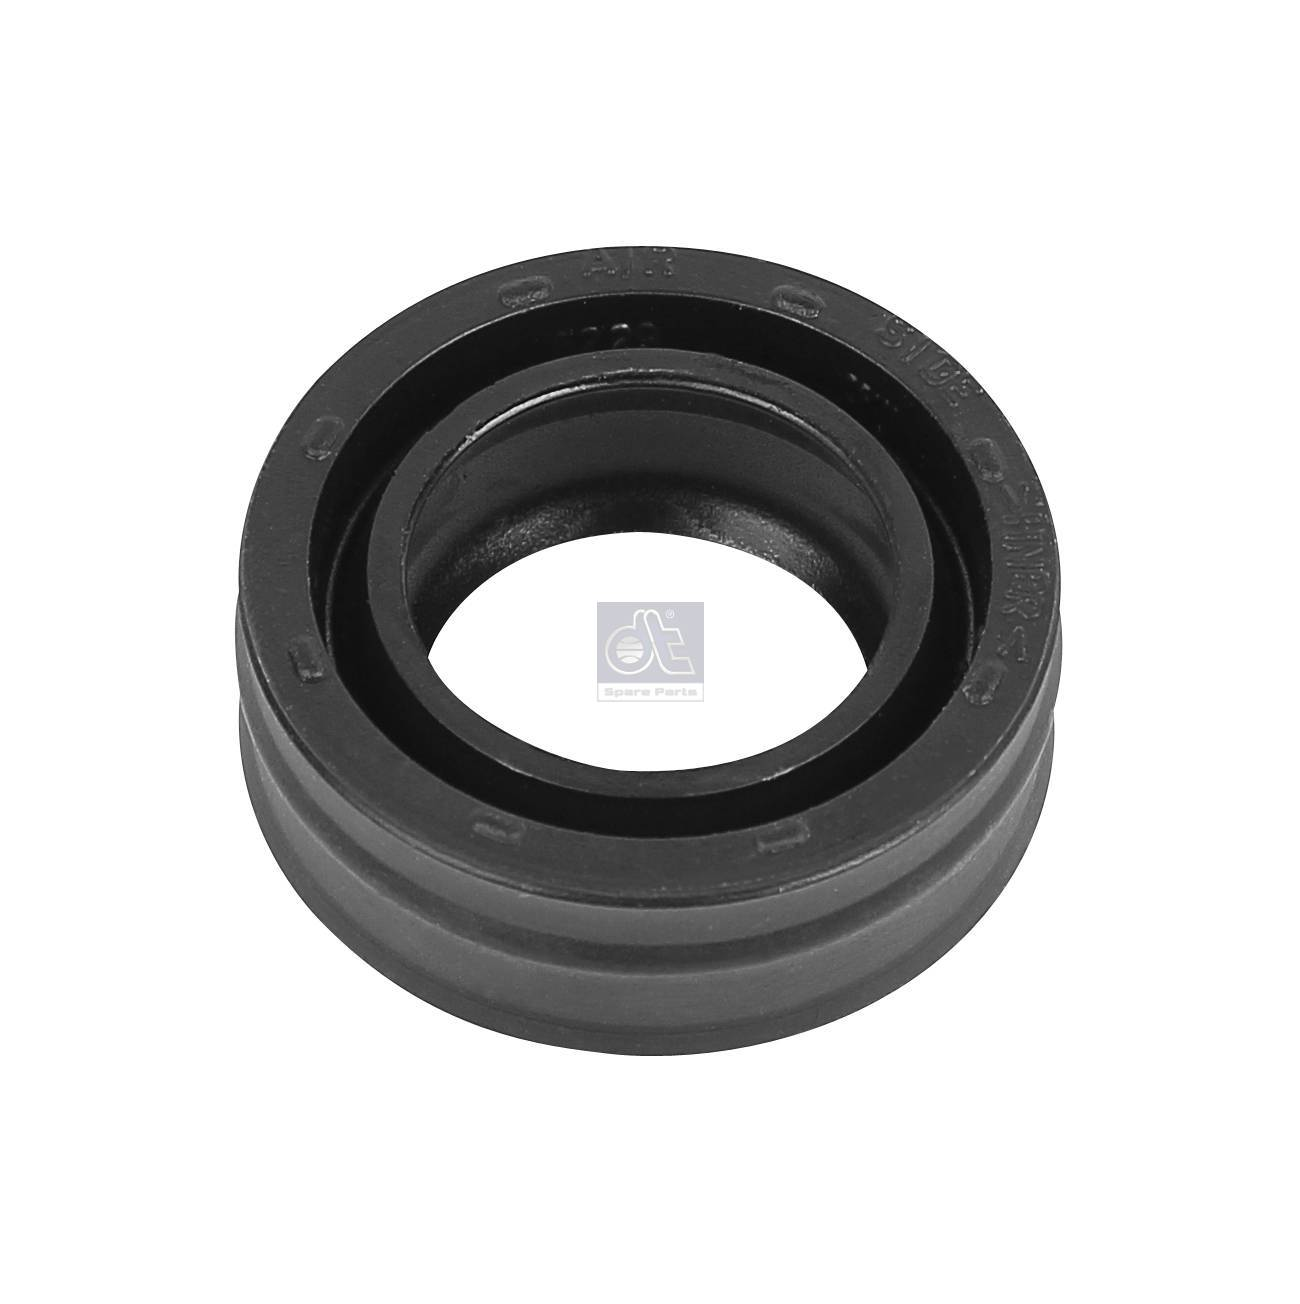 Radial sealing ring